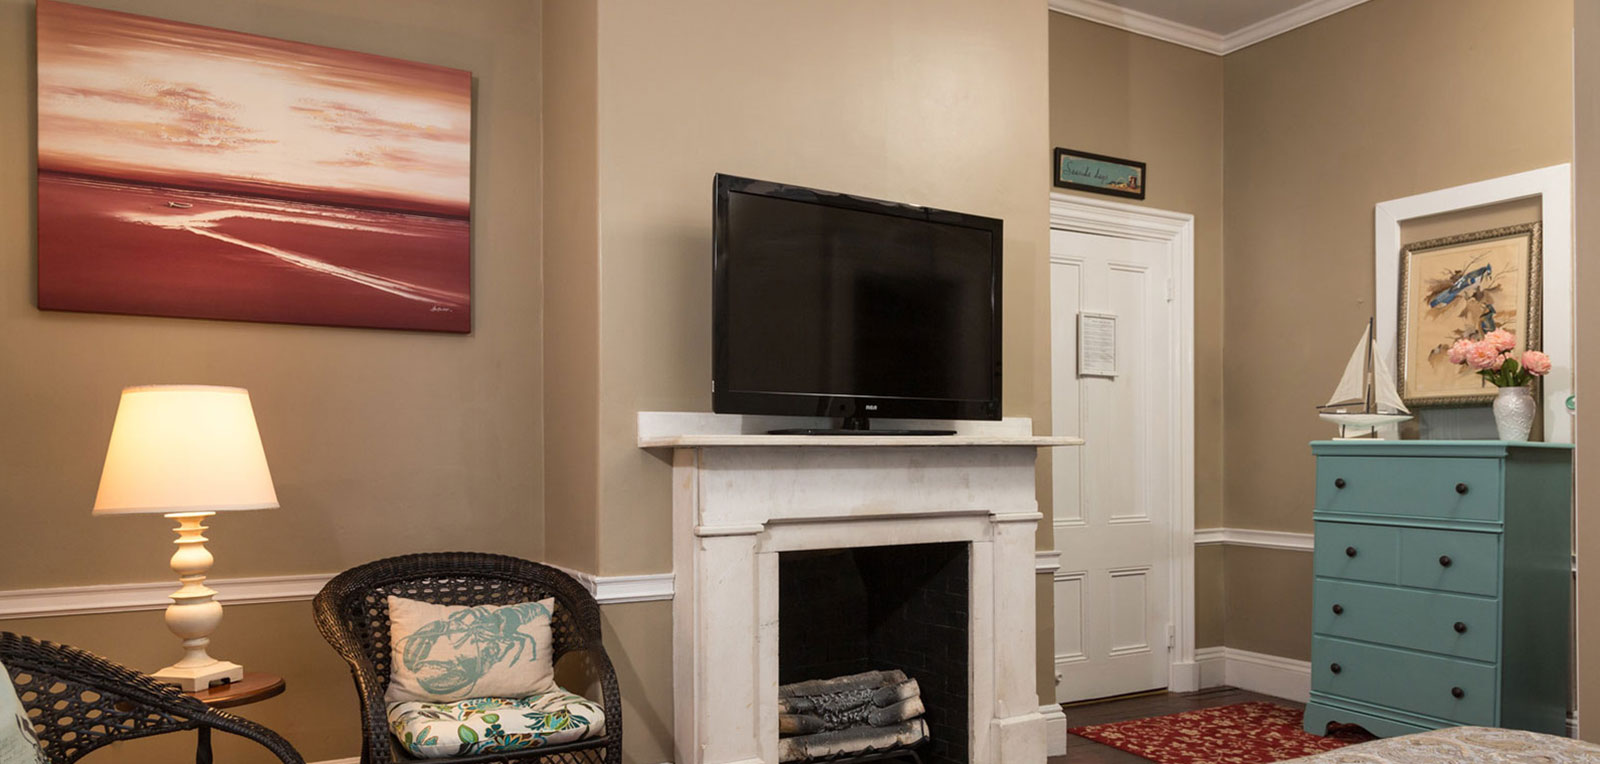 King Private Bath TV, Fireplace and Paintings | ADMIRAL SIMS B&B, Newport Rhode Island